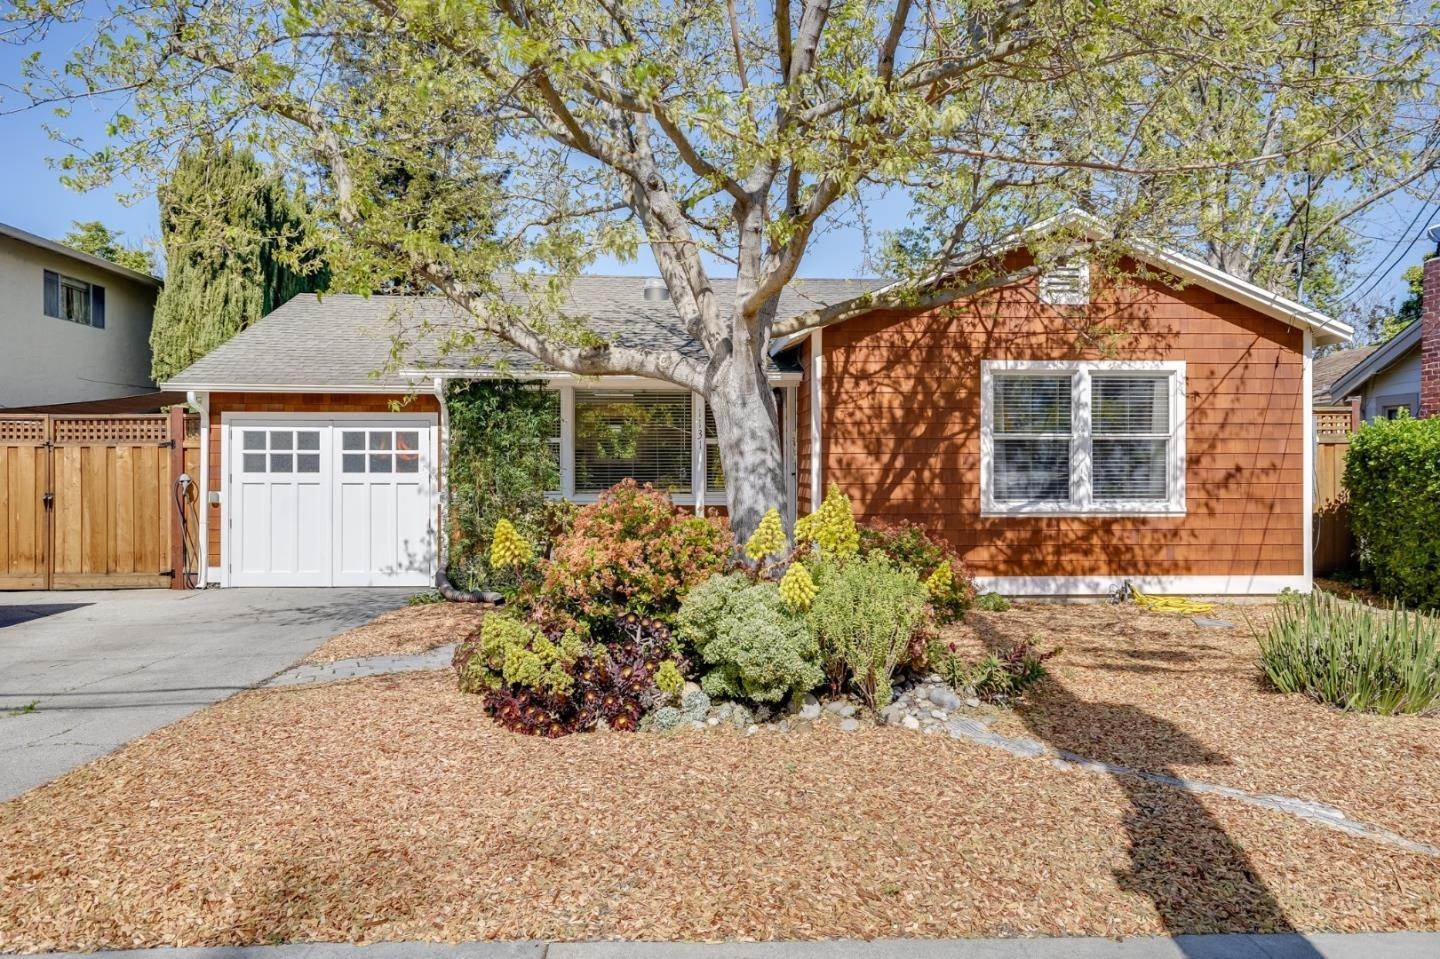 Single Family Homes for Sale at 1131 King Street Redwood City, California 94061 United States